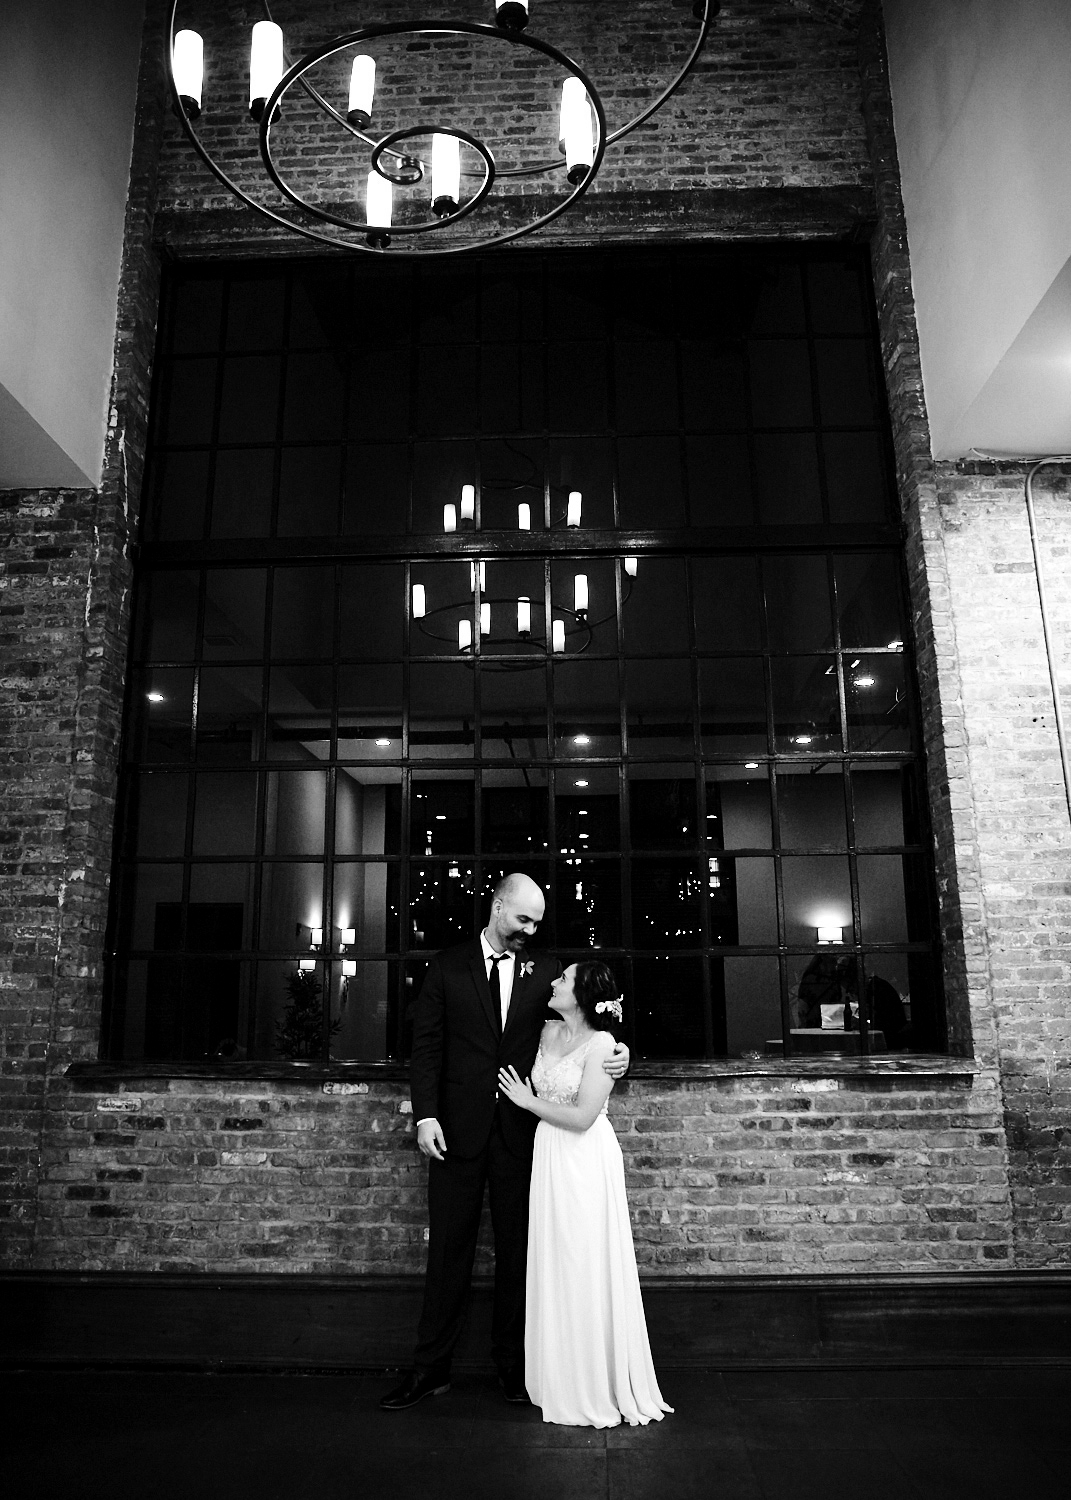 161022_A&B_26BridgeStWedding_By_BriJohnsonWeddings_0118.jpg